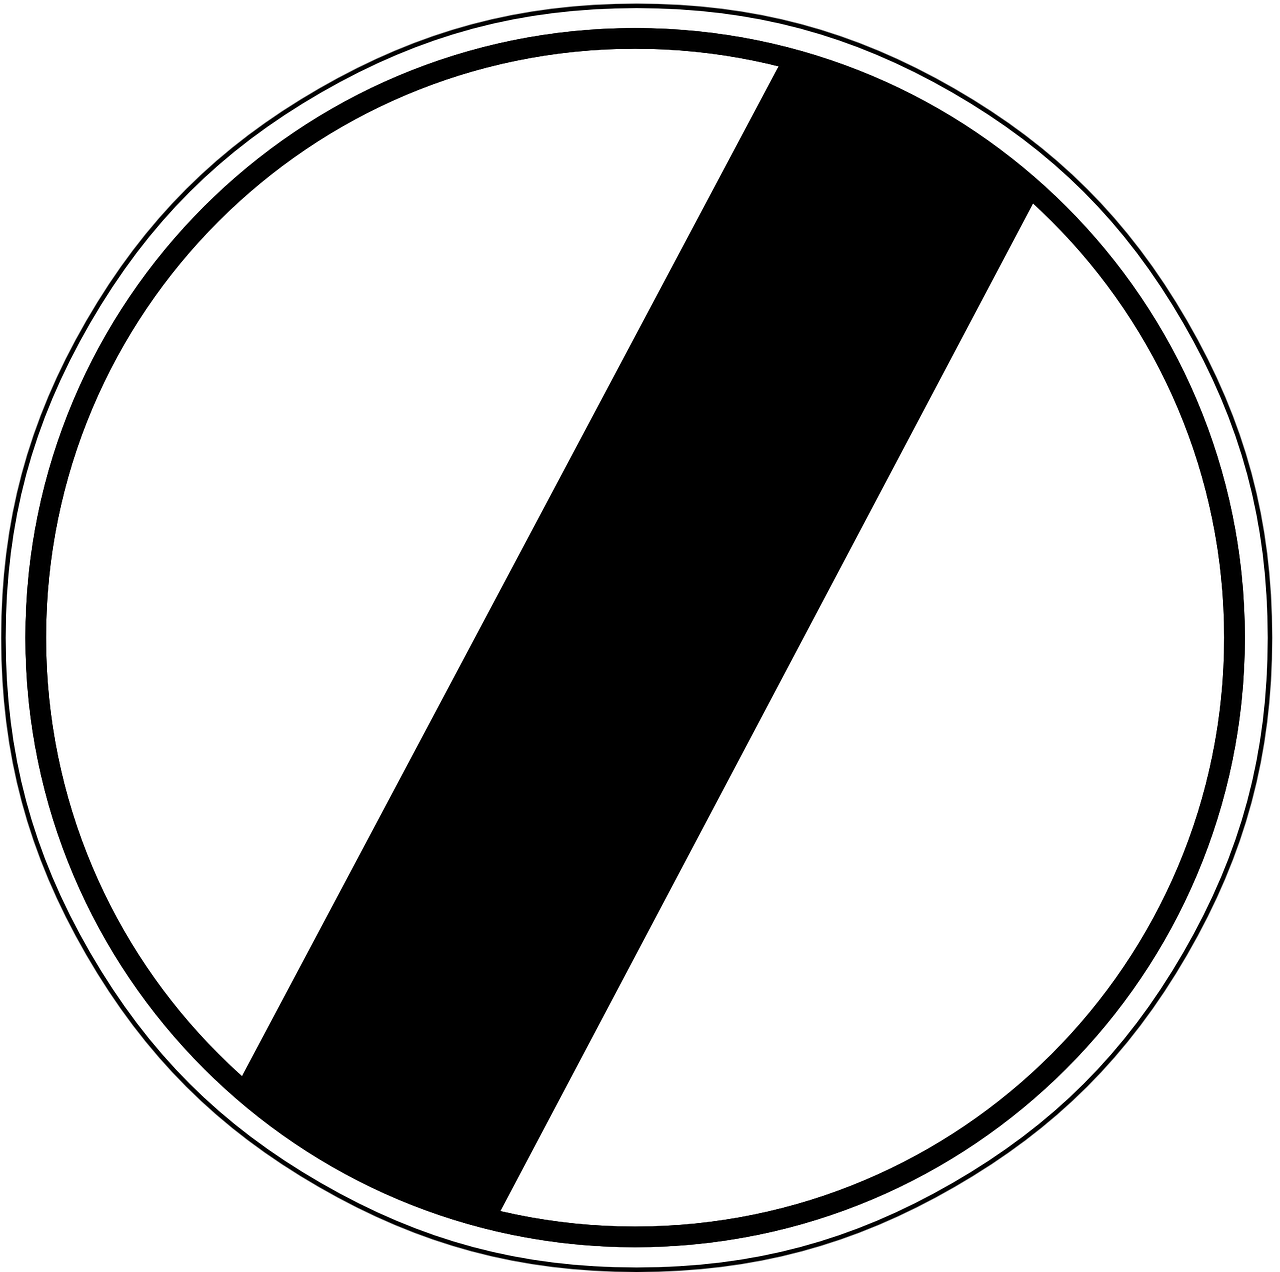 end-of-speed-limit-909992_1280.png